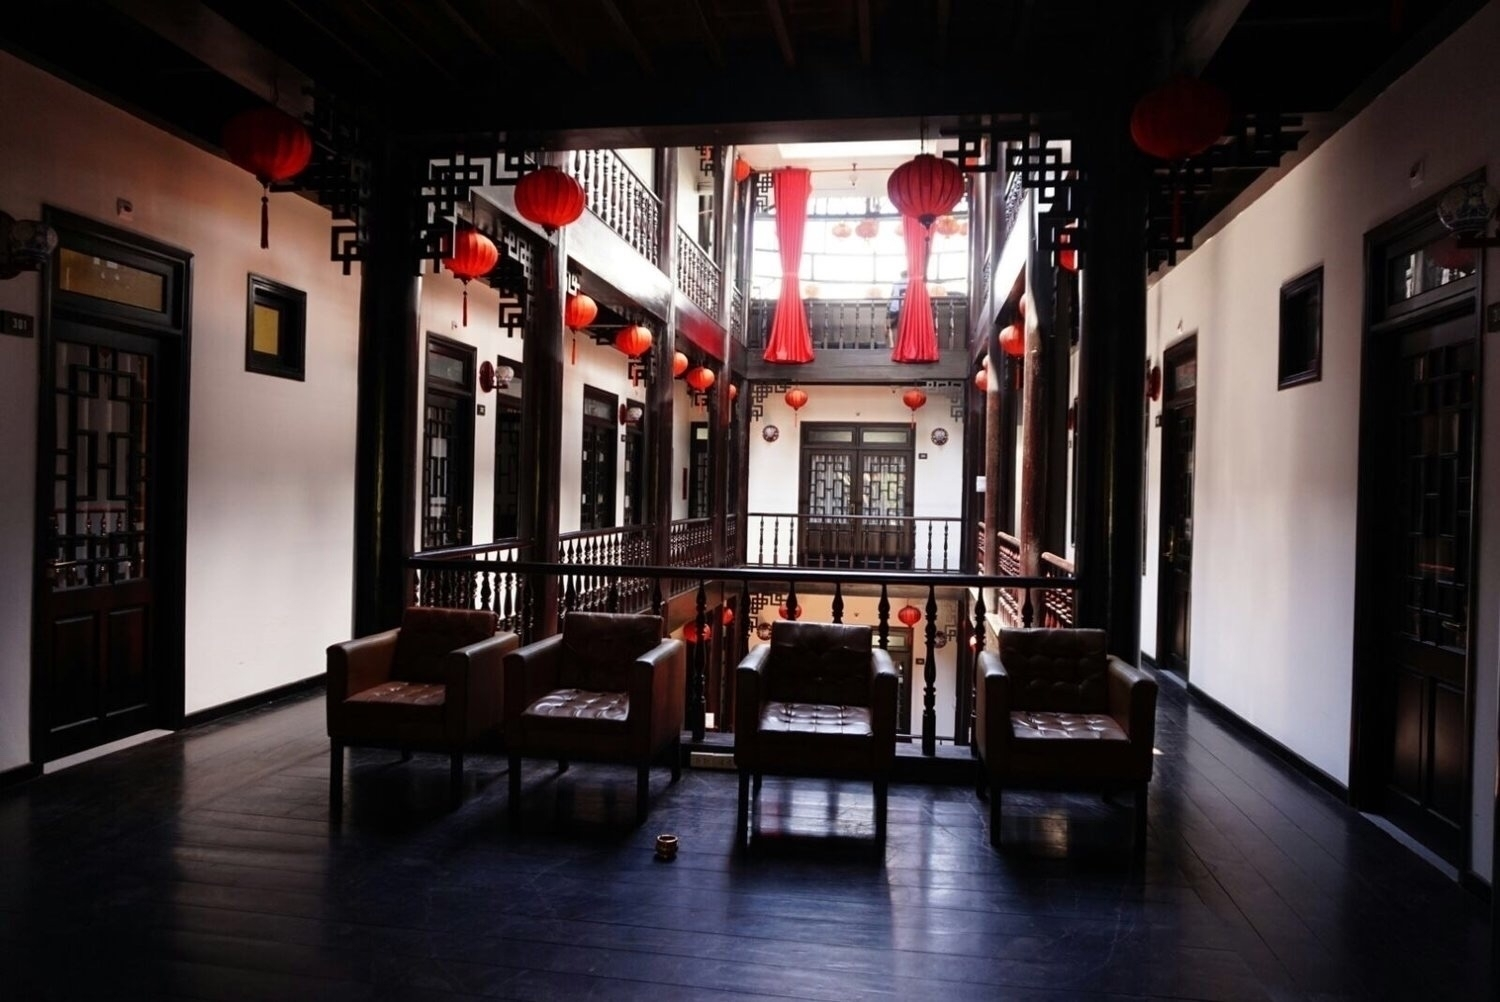 HAO HOSTEL: ULTIMATE PLACE STAY - d_bohotraveller | ello